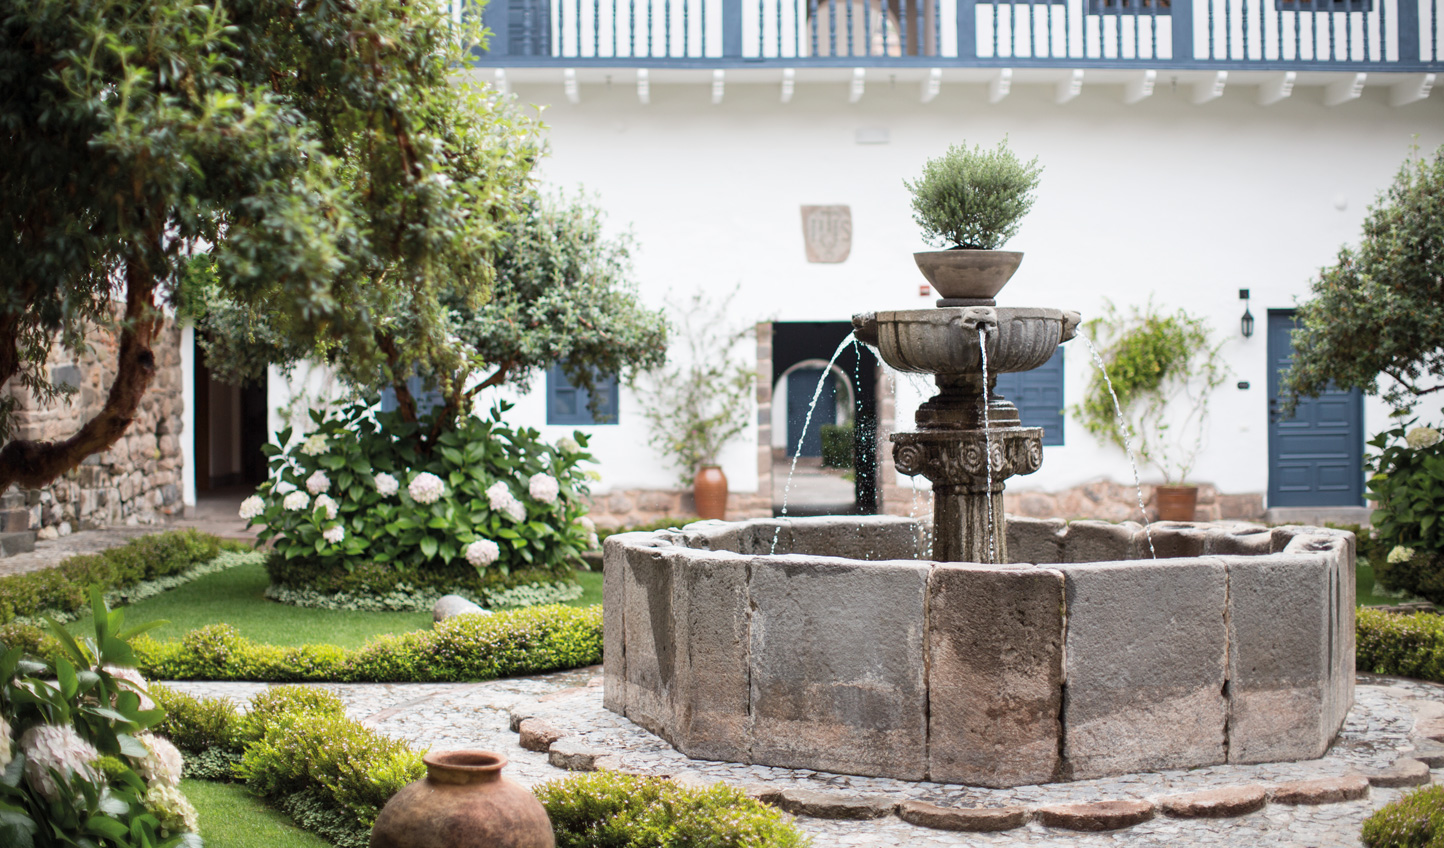 A peaceful oasis in the heart of cultural Cusco